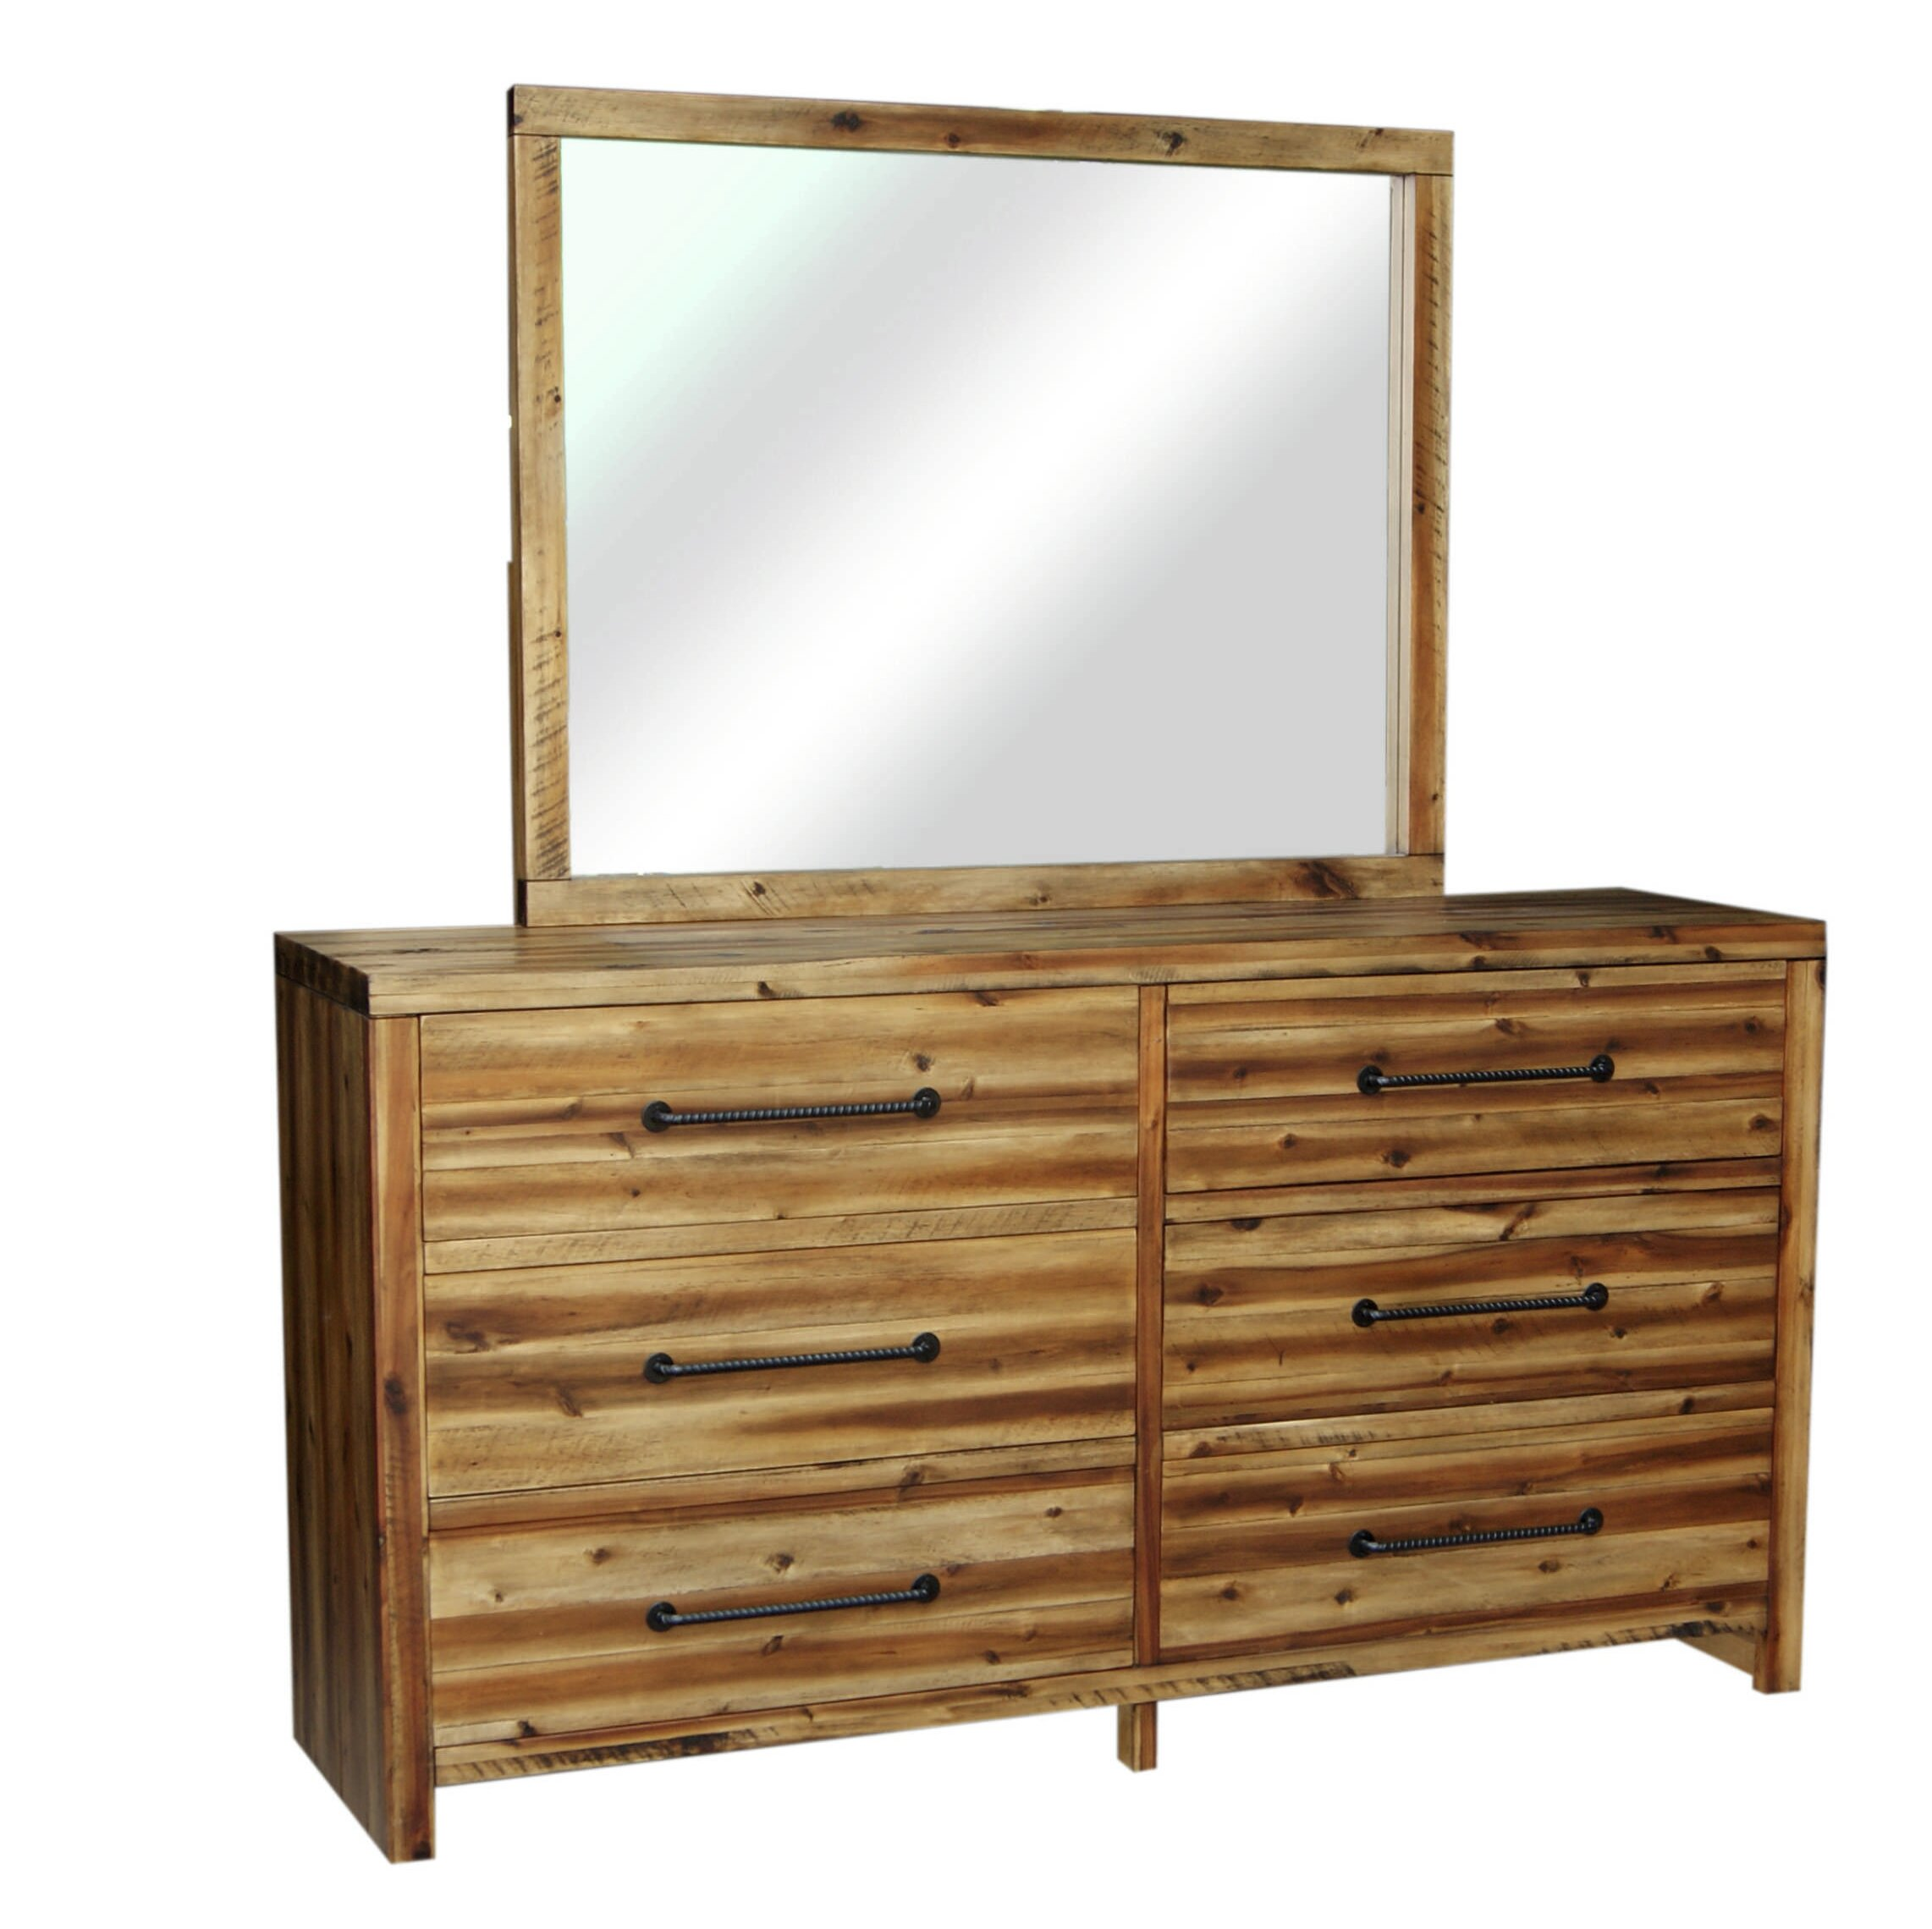 Dresser With Mirror Union Rustic Dressers Chests You Ll Love In 2021 Wayfair